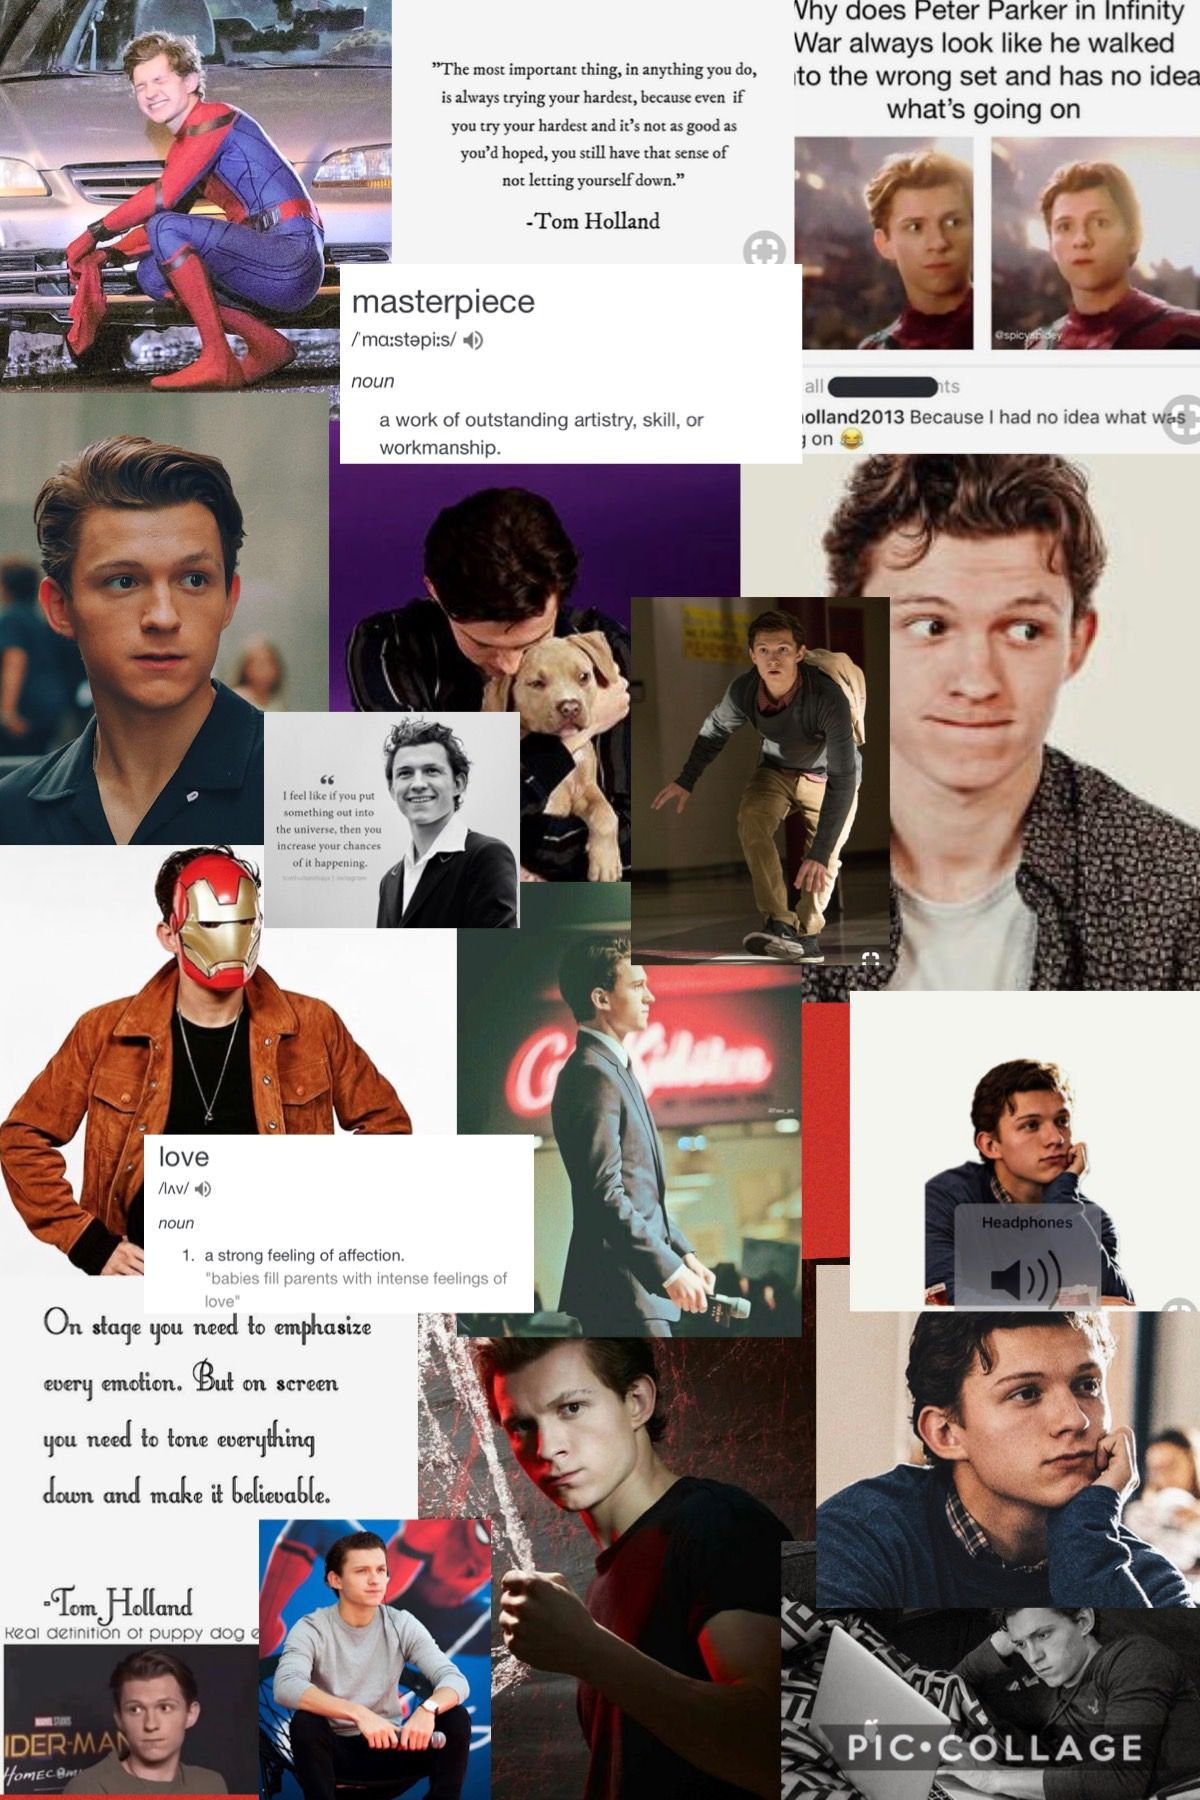 My New Background Very Happy Made It Myself Tom Holland Tom Holland Spiderman Tom Holland Peter Parker